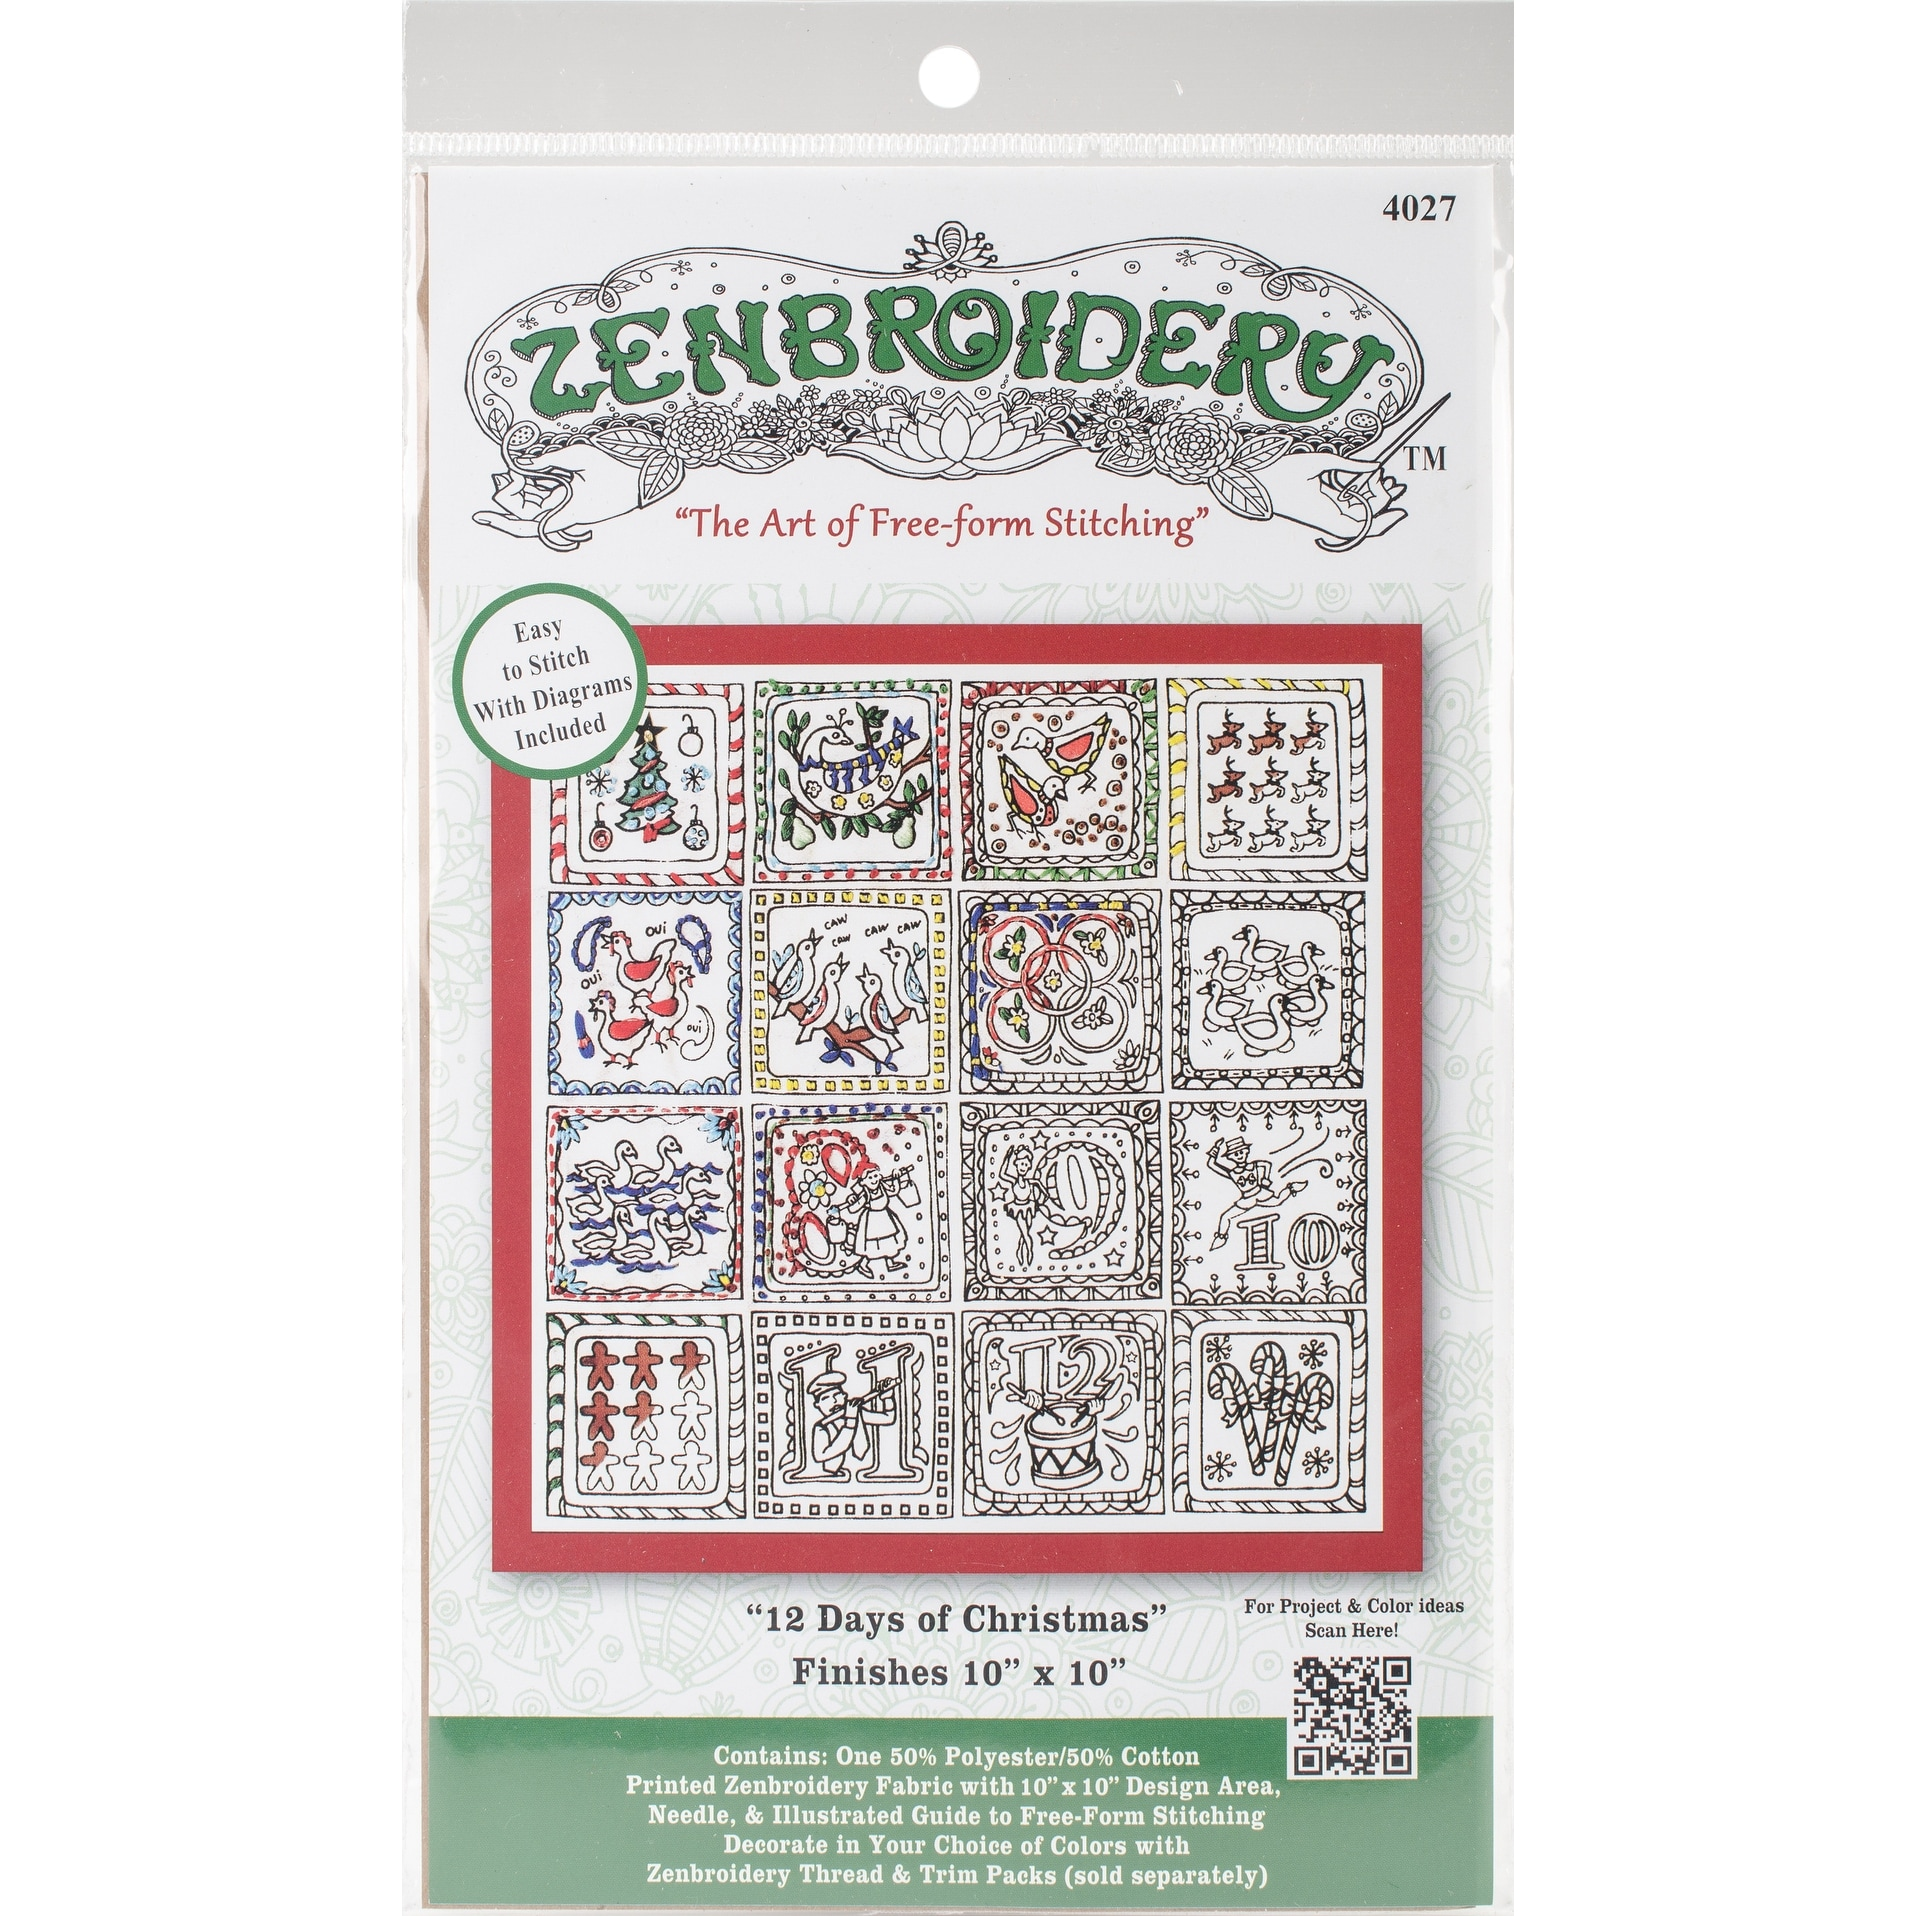 Embroidery Design Works Zenbroidery Christmas Tree Fabric Pack